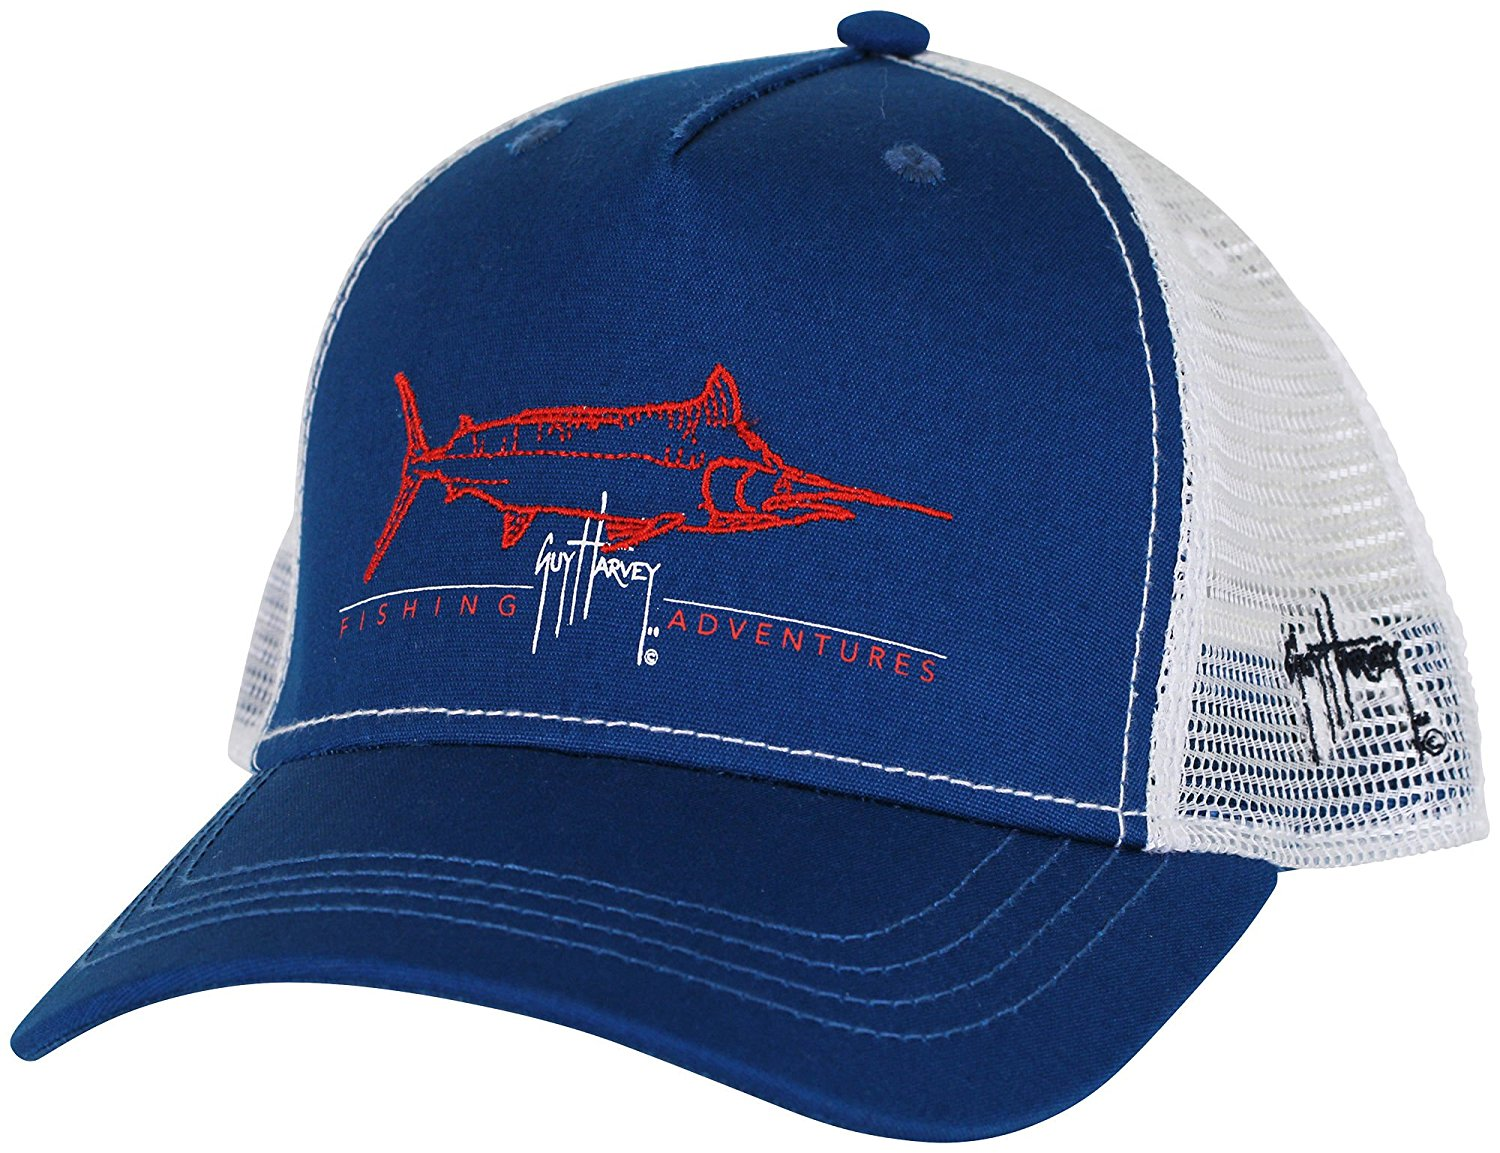 a22141b8f5f Get Quotations · Guy Harvey Tight Line Trucker Hat - Navy Blue - One Size  fits All